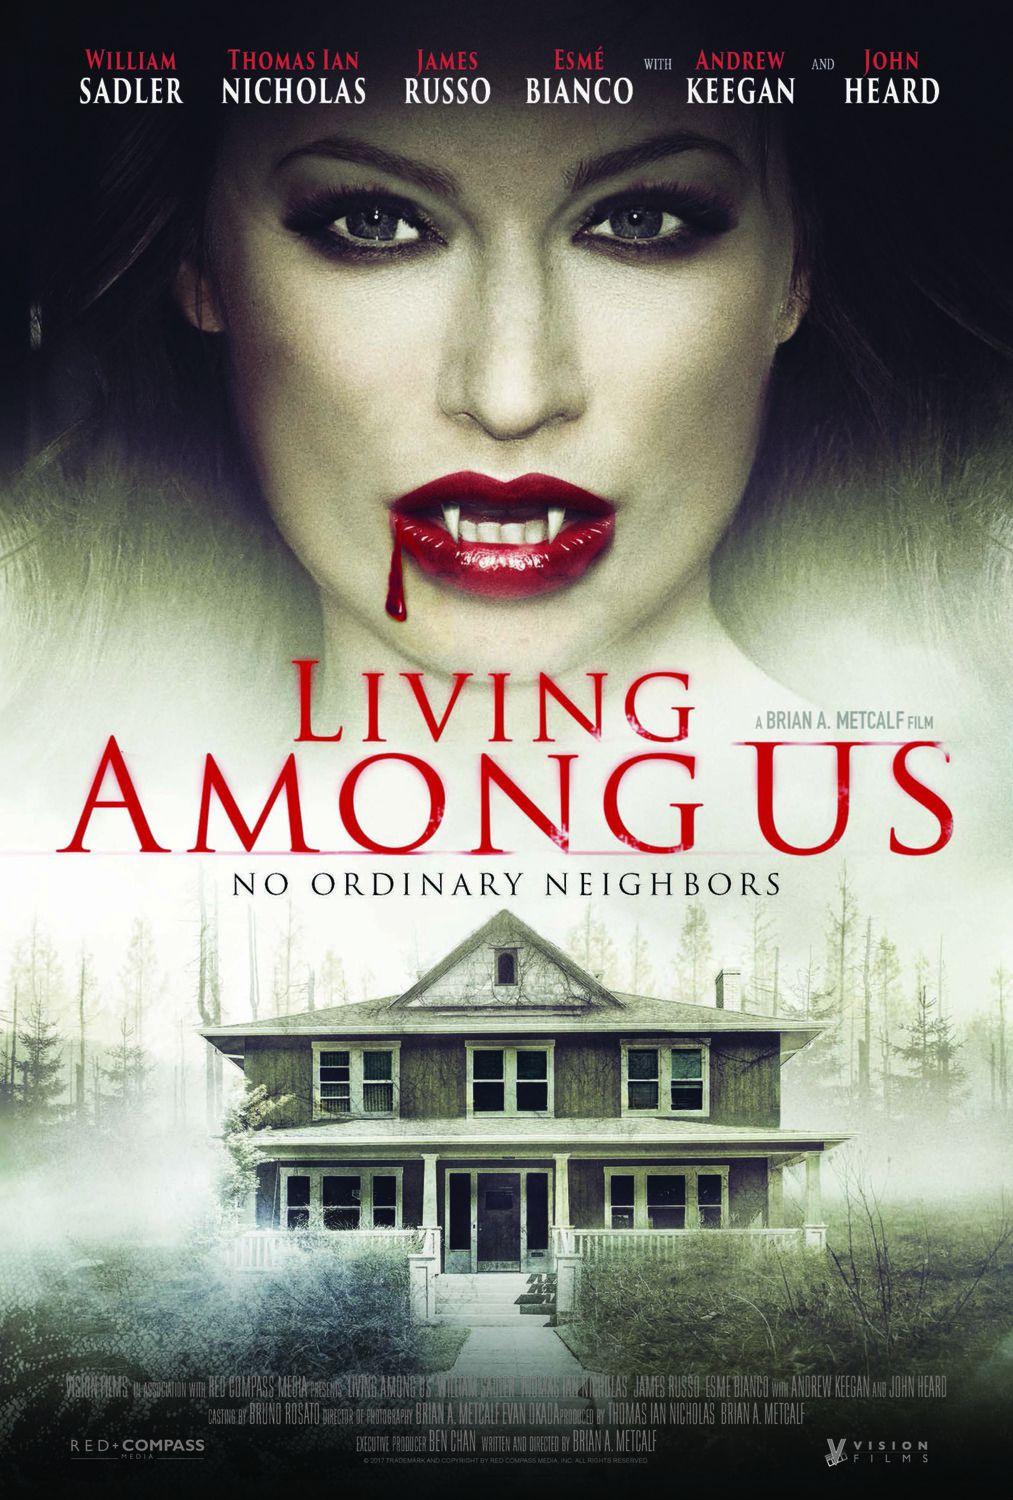 Living Among Us (2018) no ordinary neighbors - vampire horror film poster